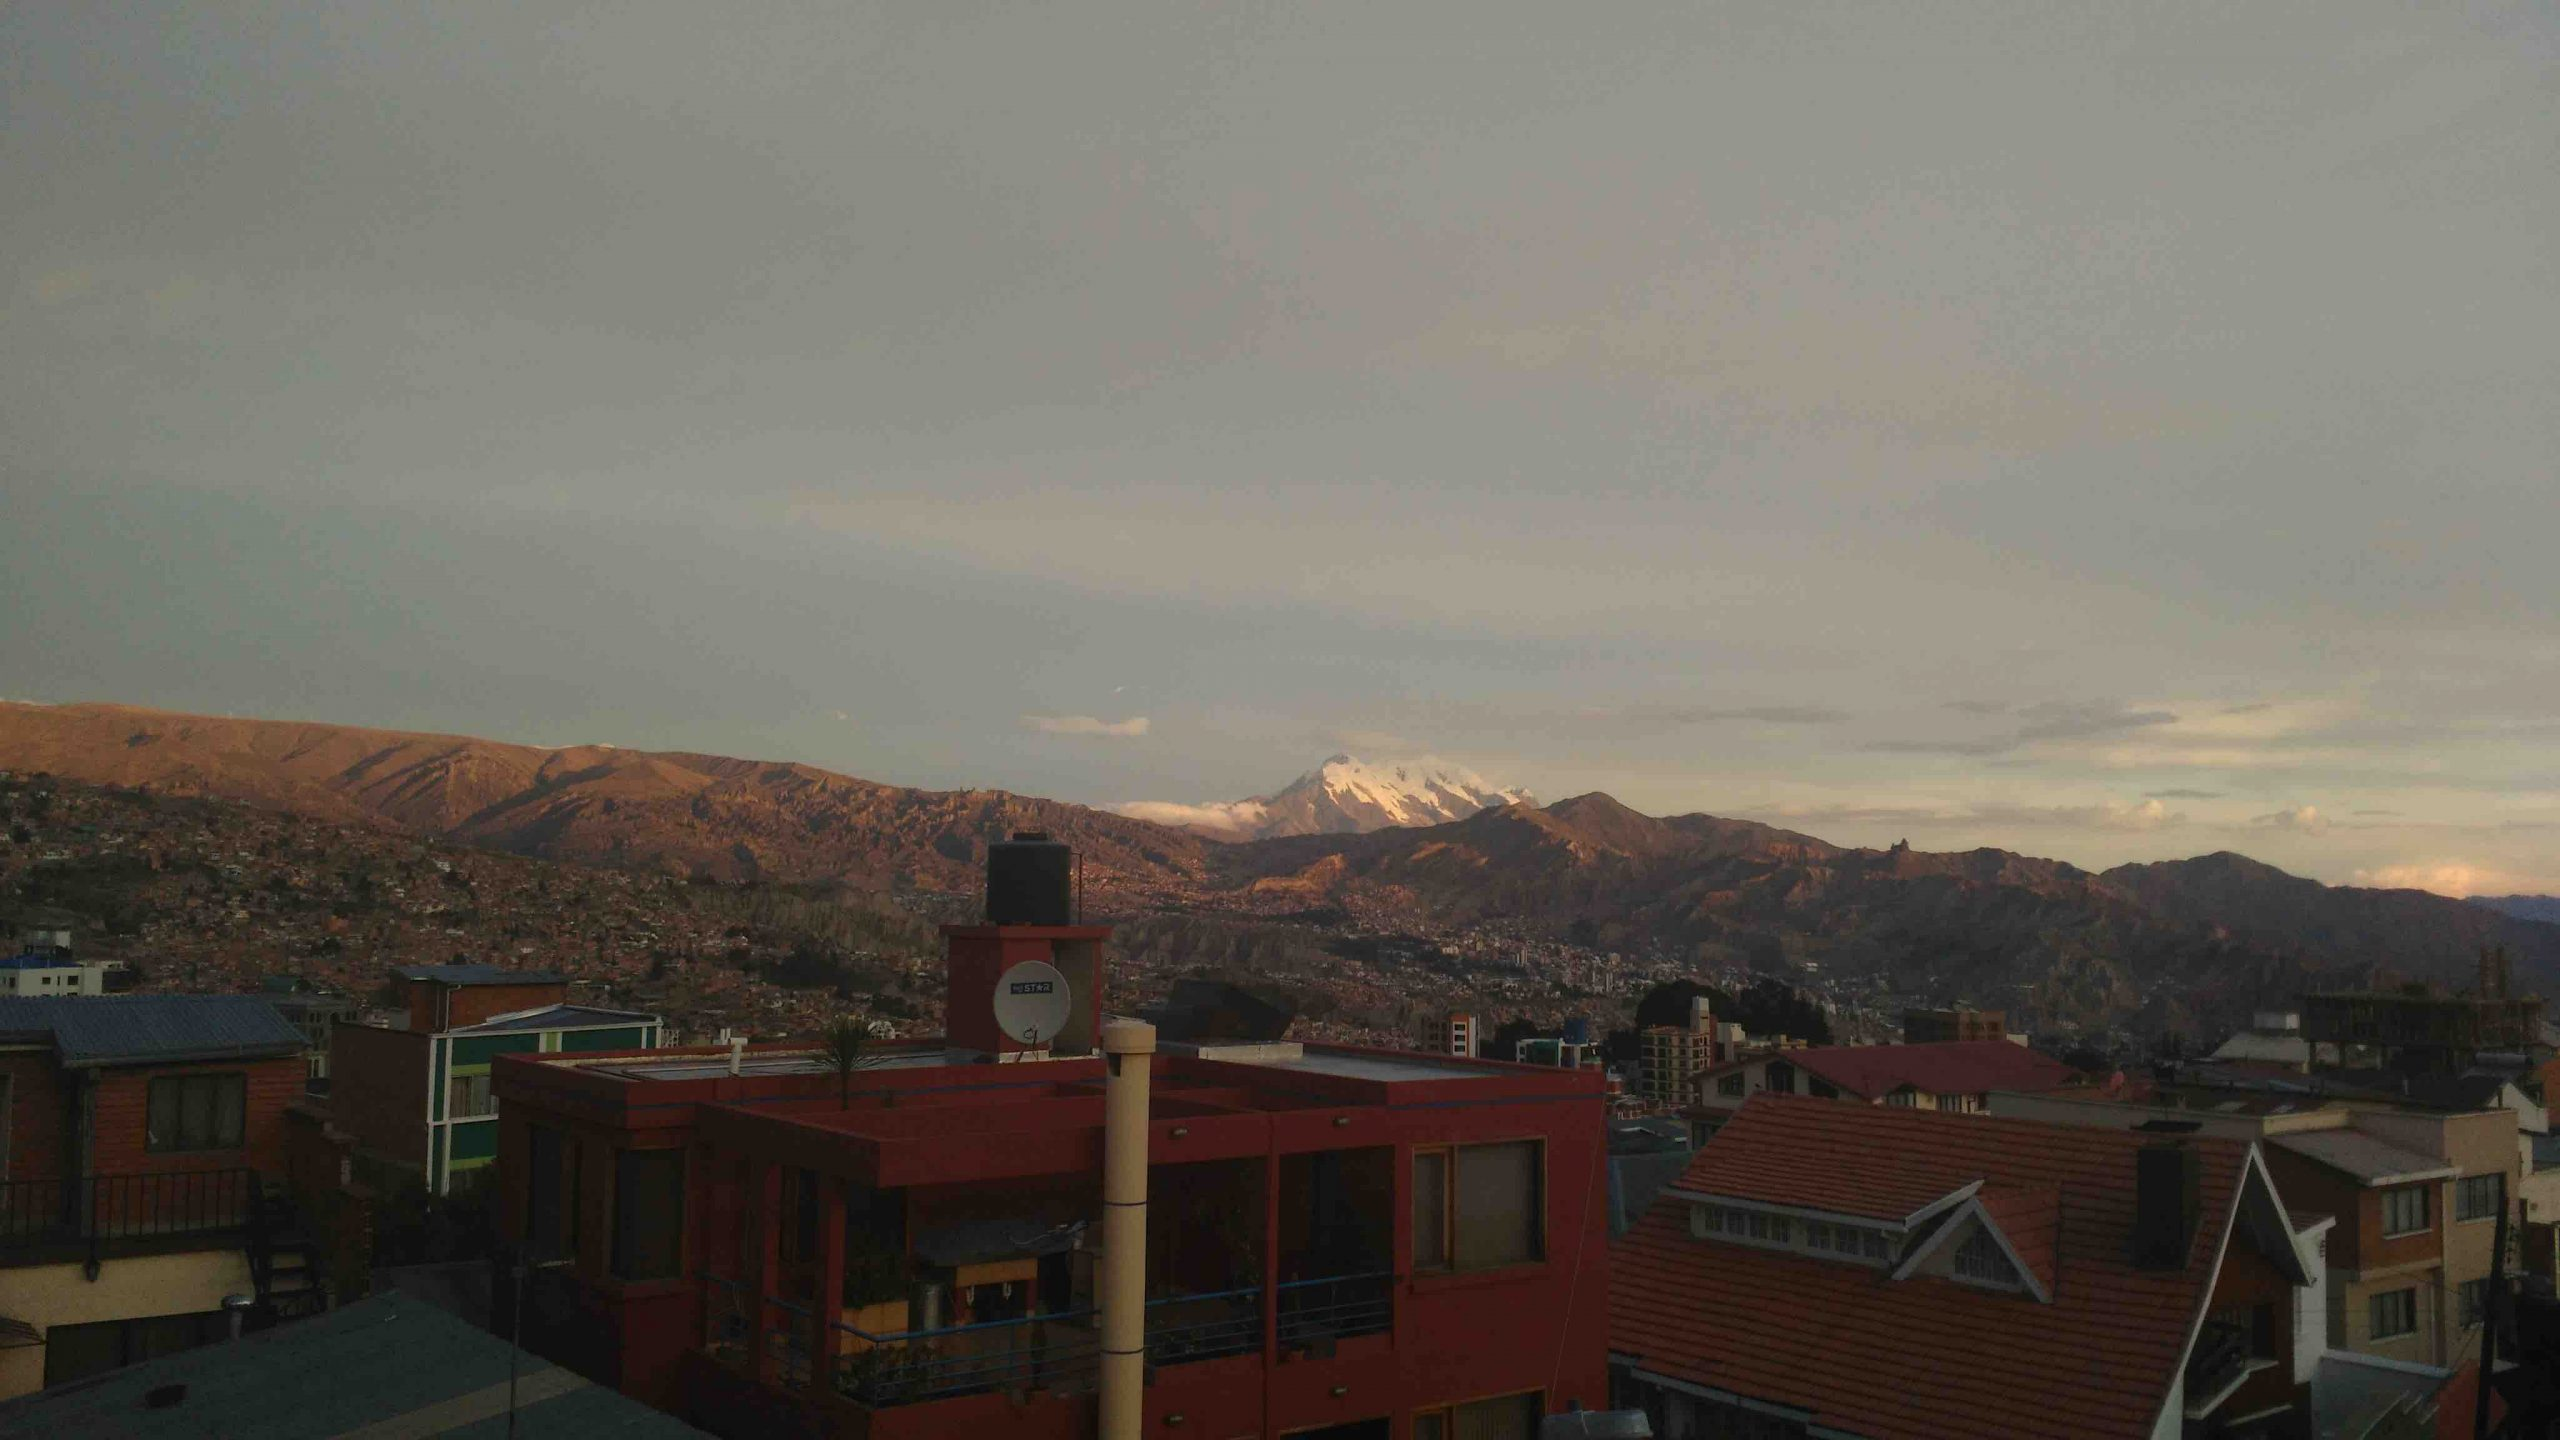 La Paz Bolivia Pictures for Inspiration